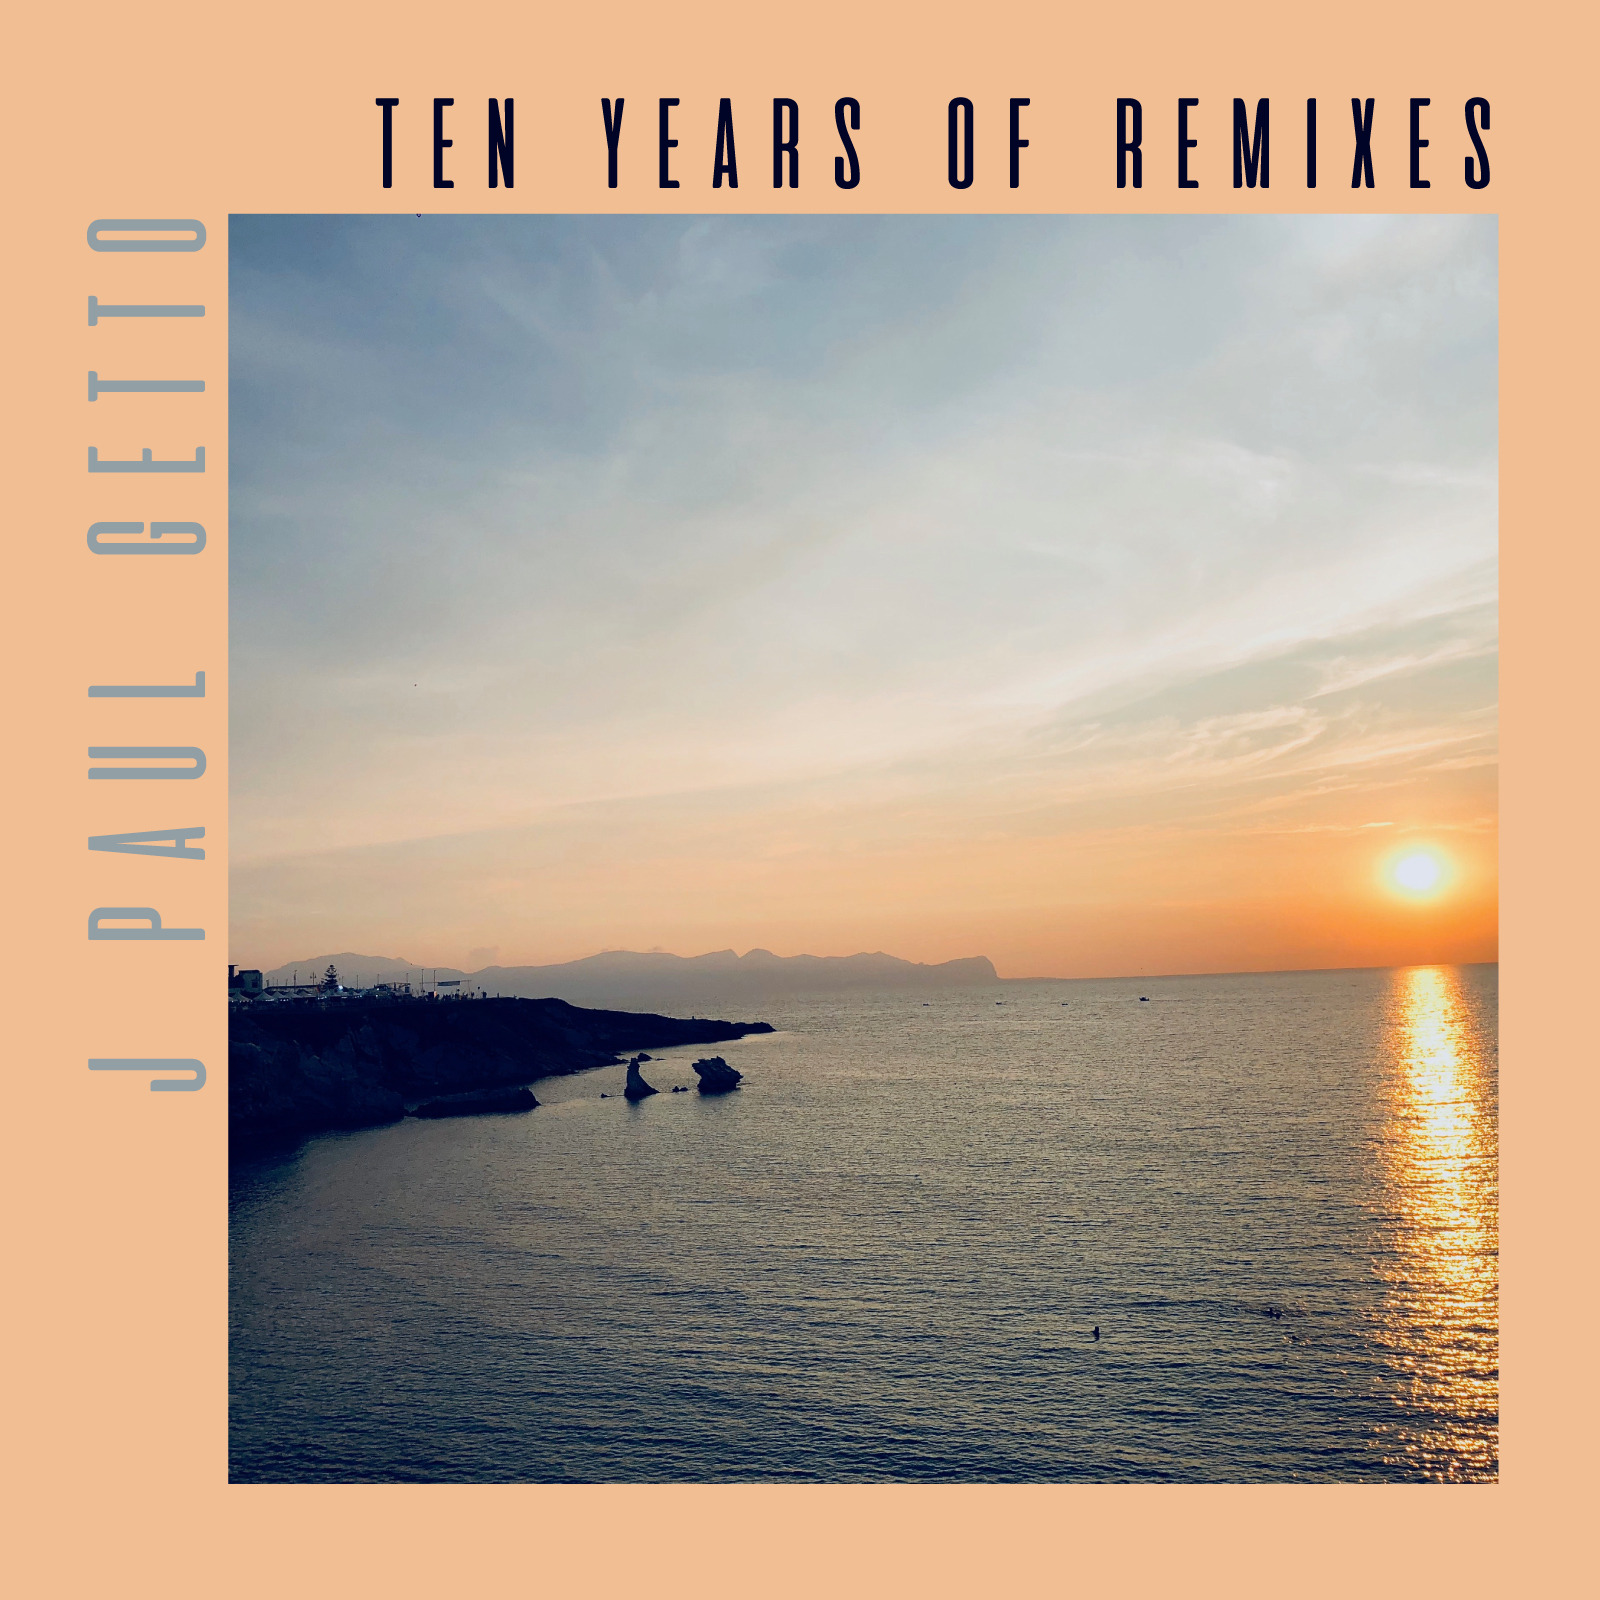 TEN YEARS OF REMIXES